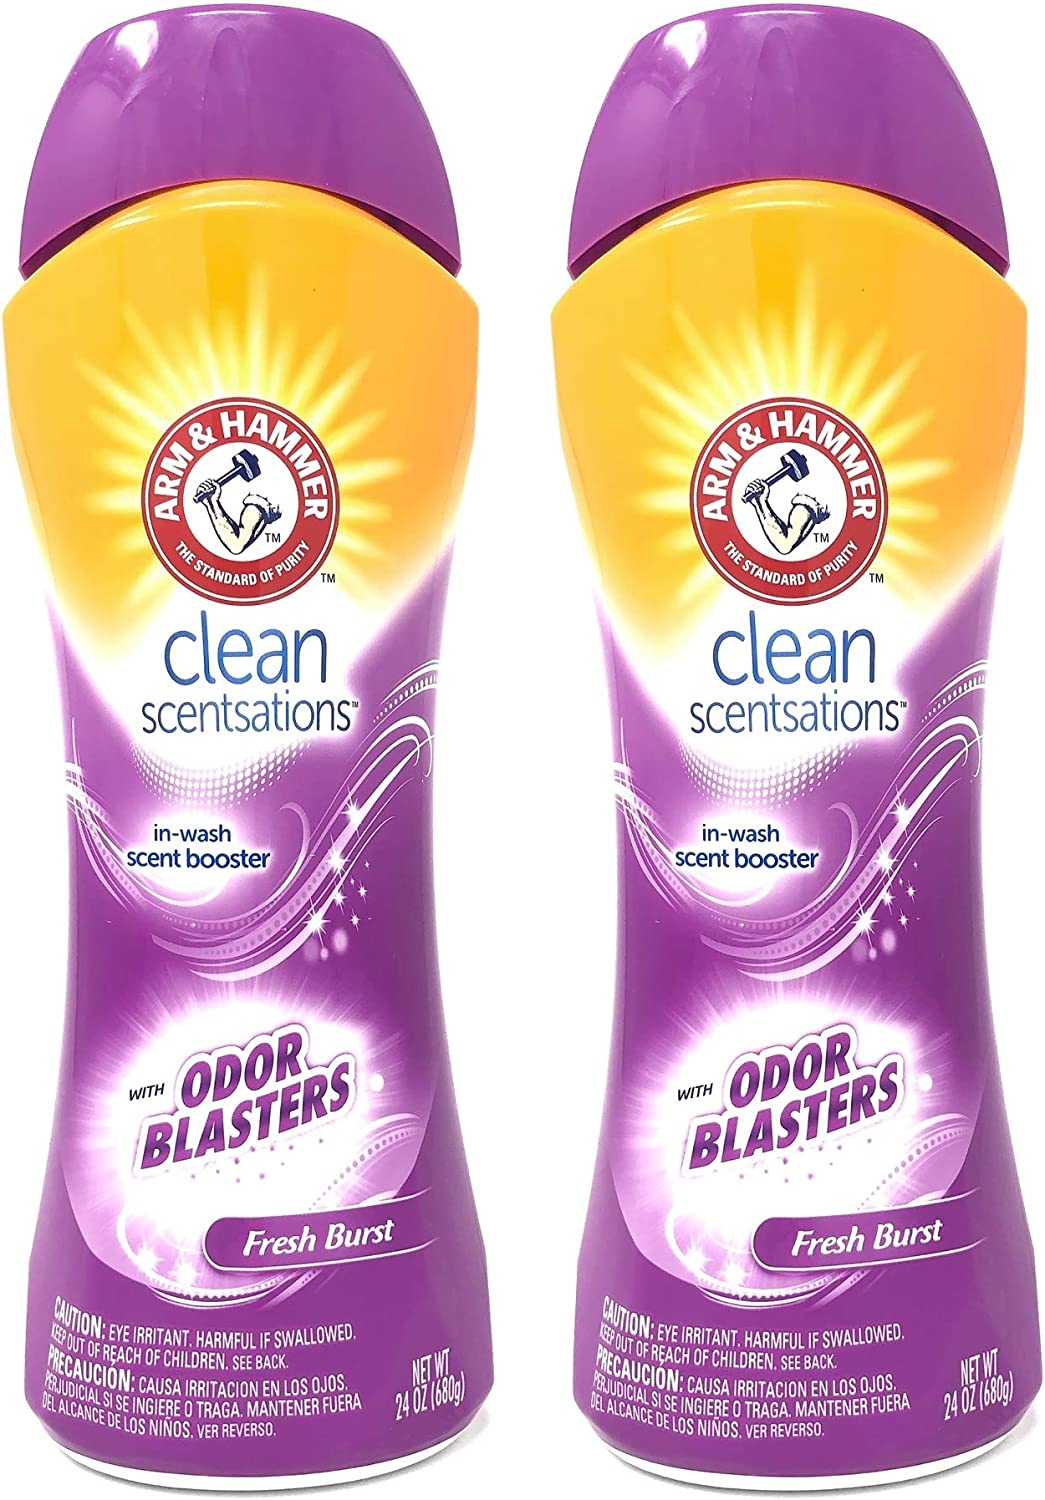 Arm & Hammer Clean Scentsations Odor Blasters in-Wash Scent Booster, Fresh Burst, 24 Ounces (Pack of 2)